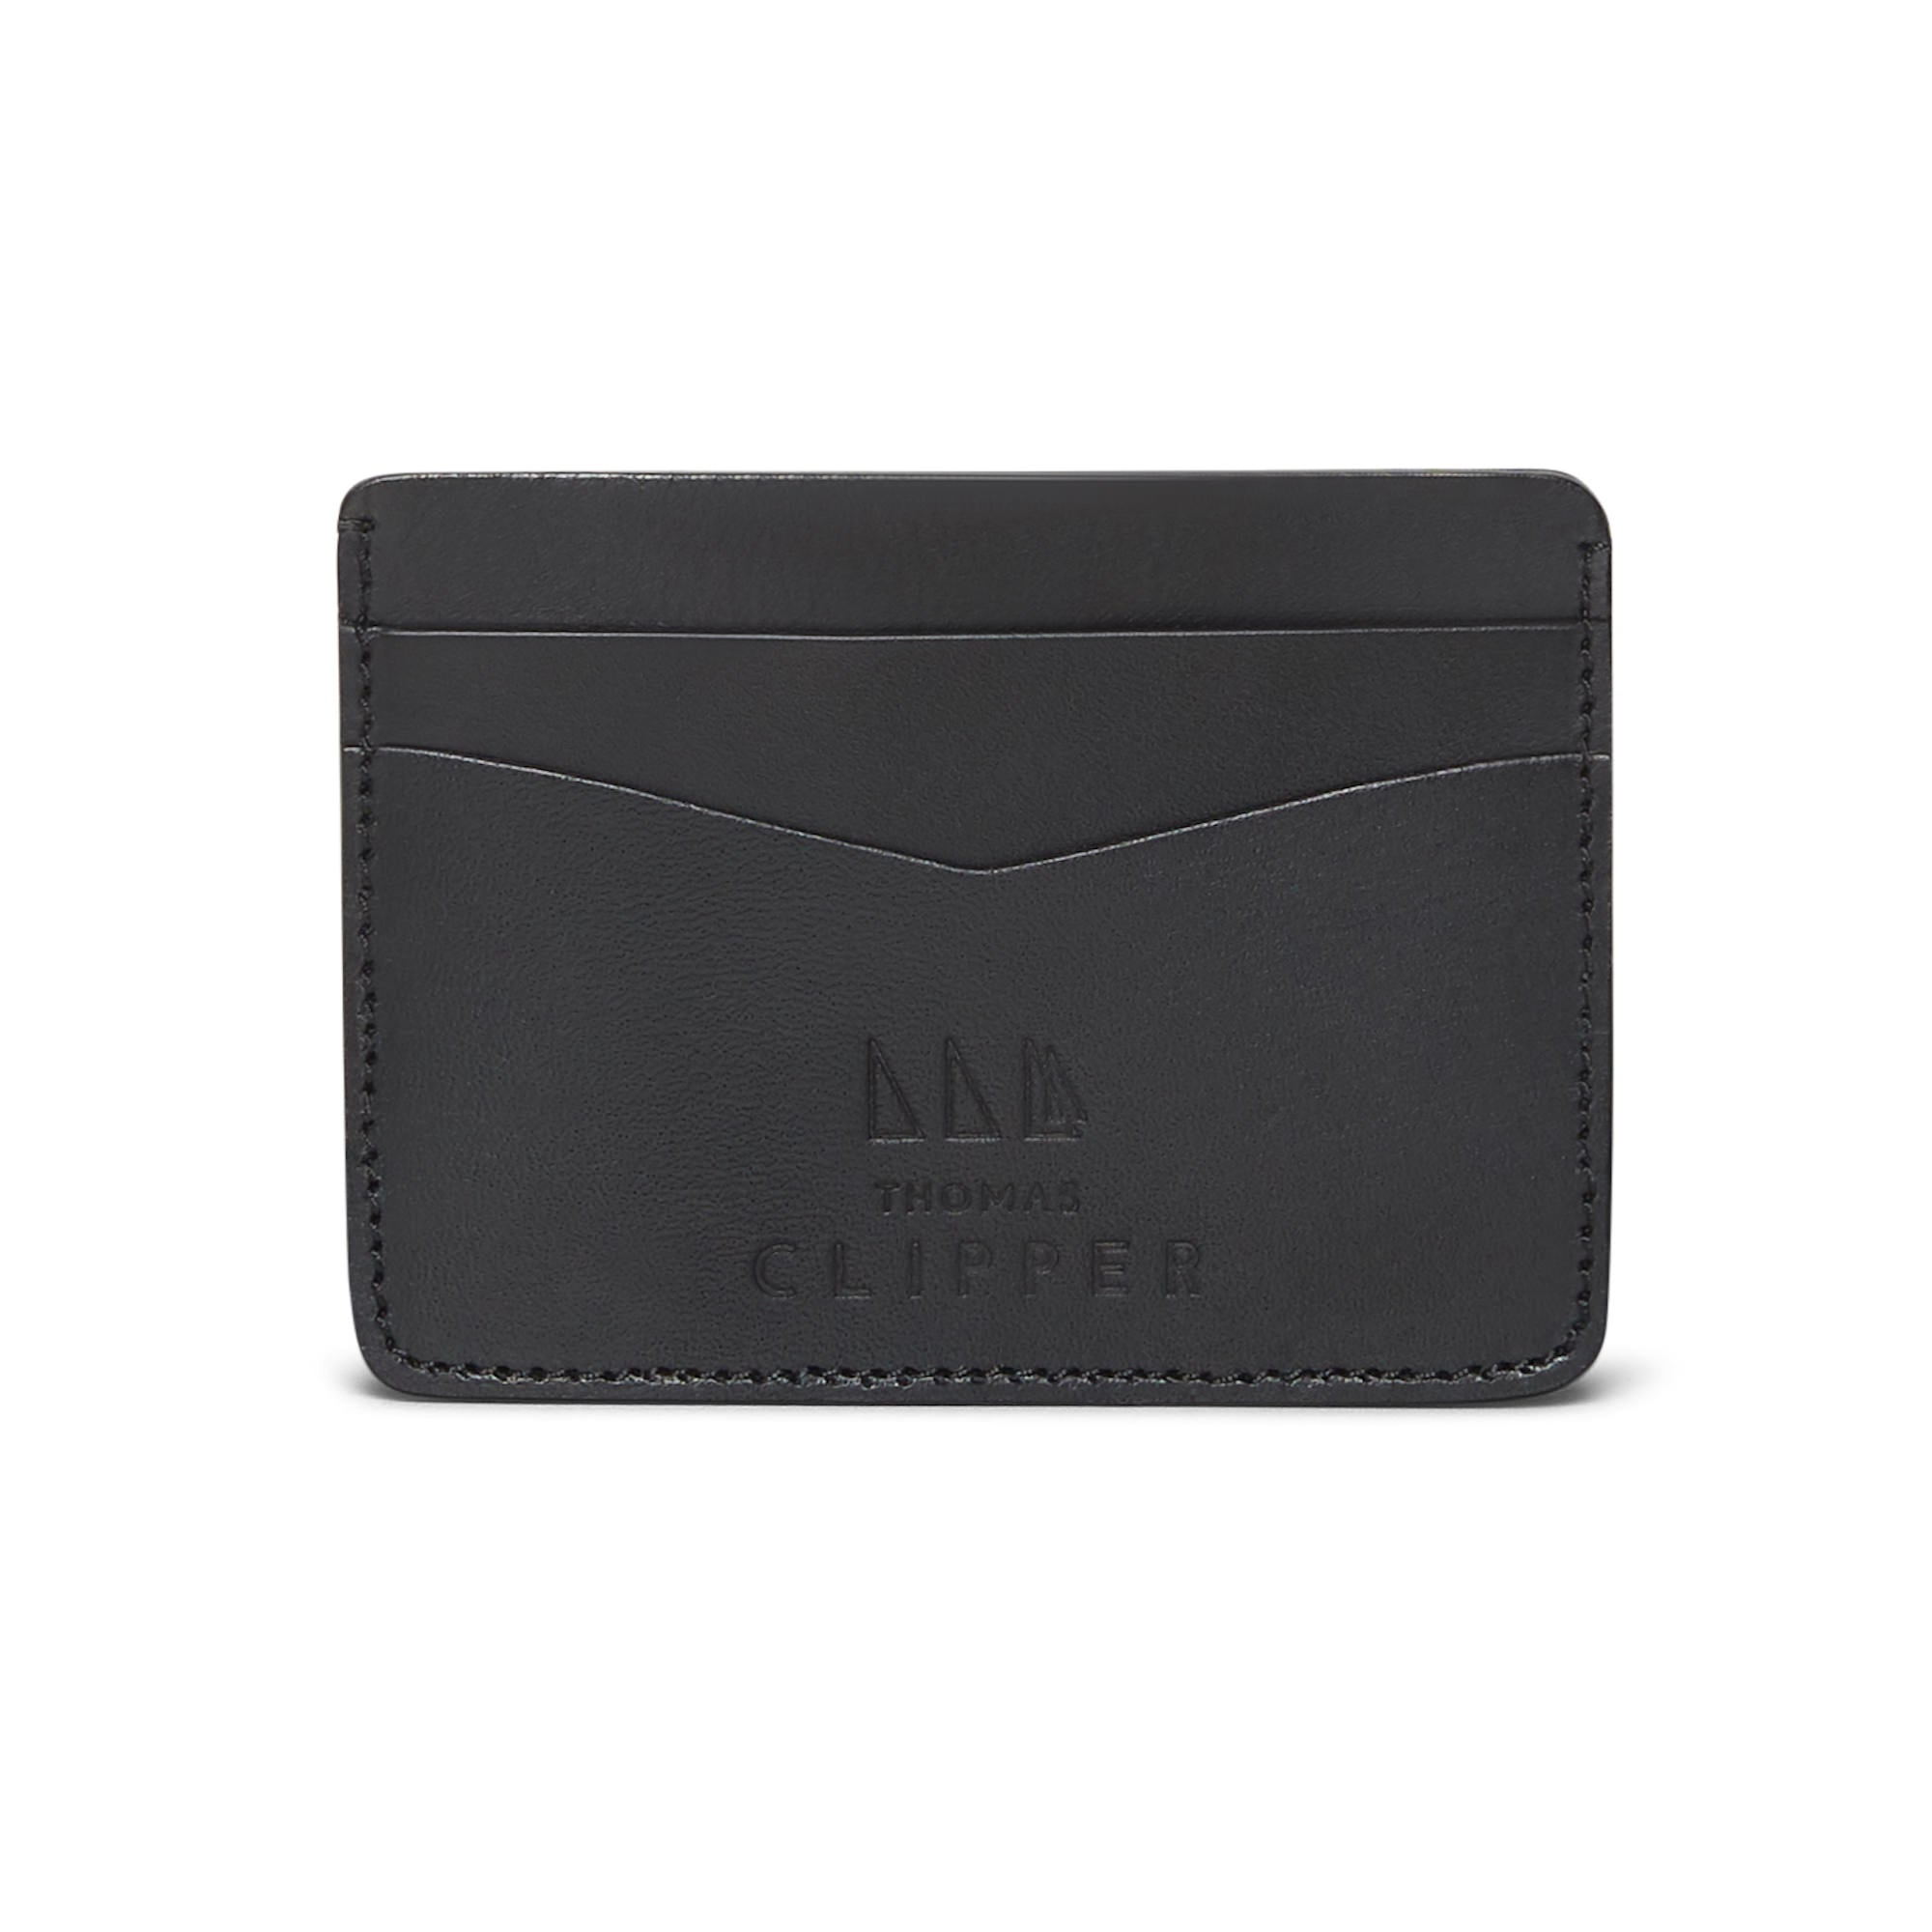 Minimalist Leather Card Holder - Original